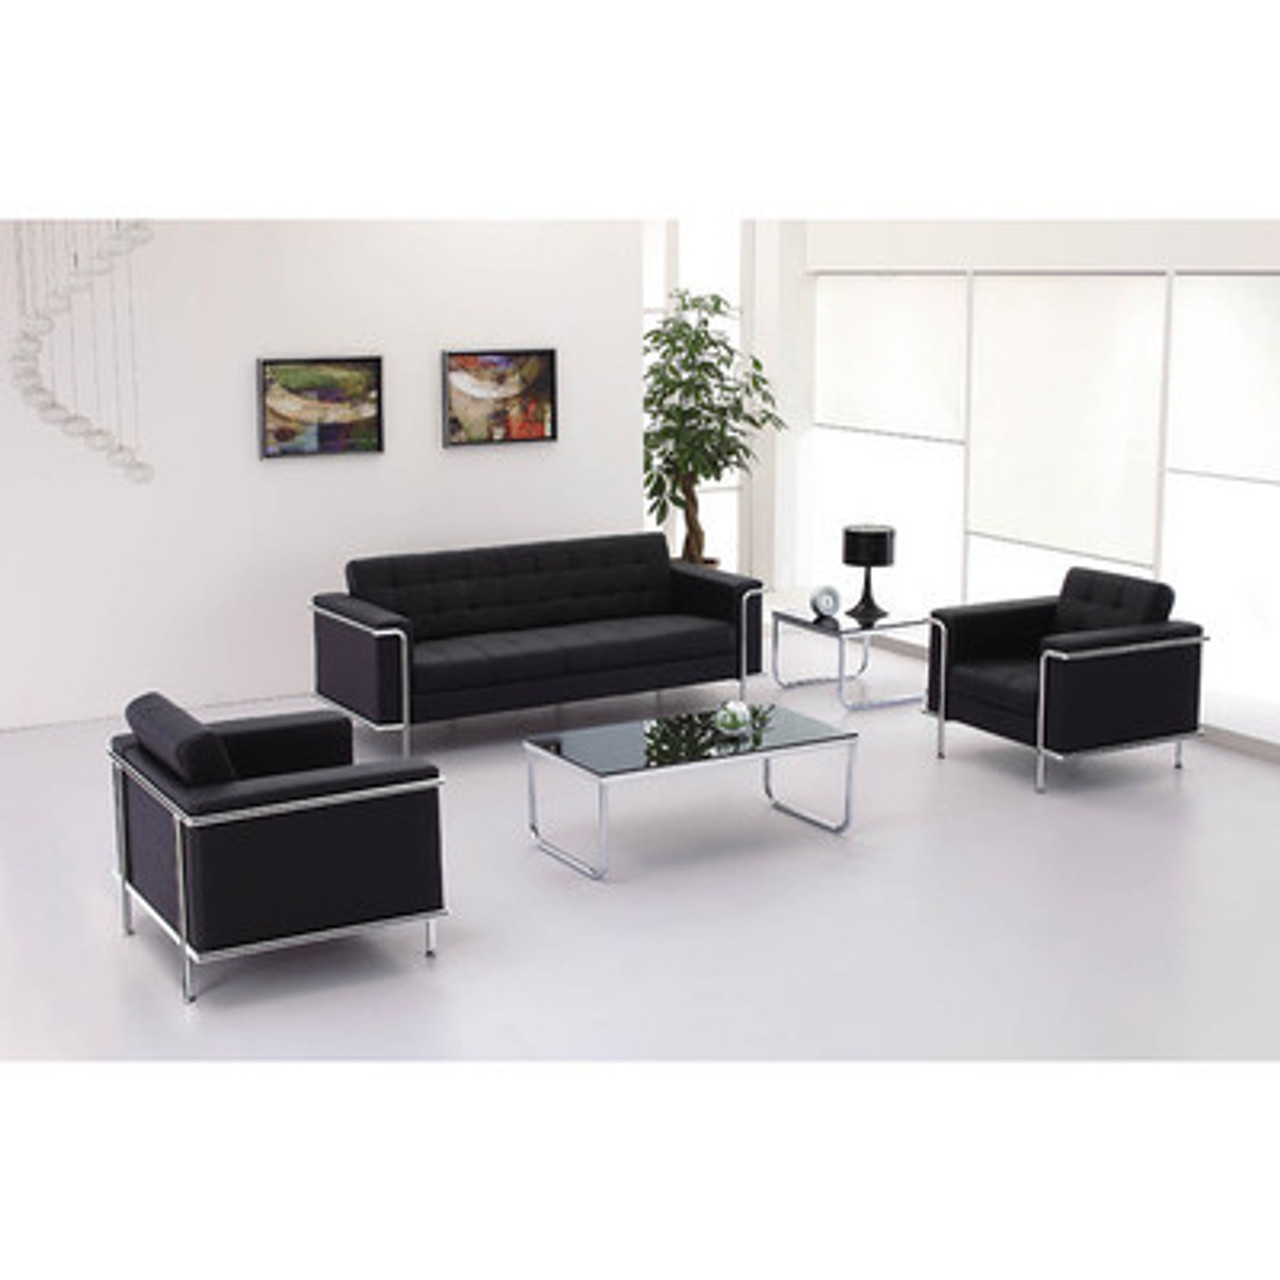 3pc Modern Leather Office Reception Sofa Set, FF-0453-12-S1